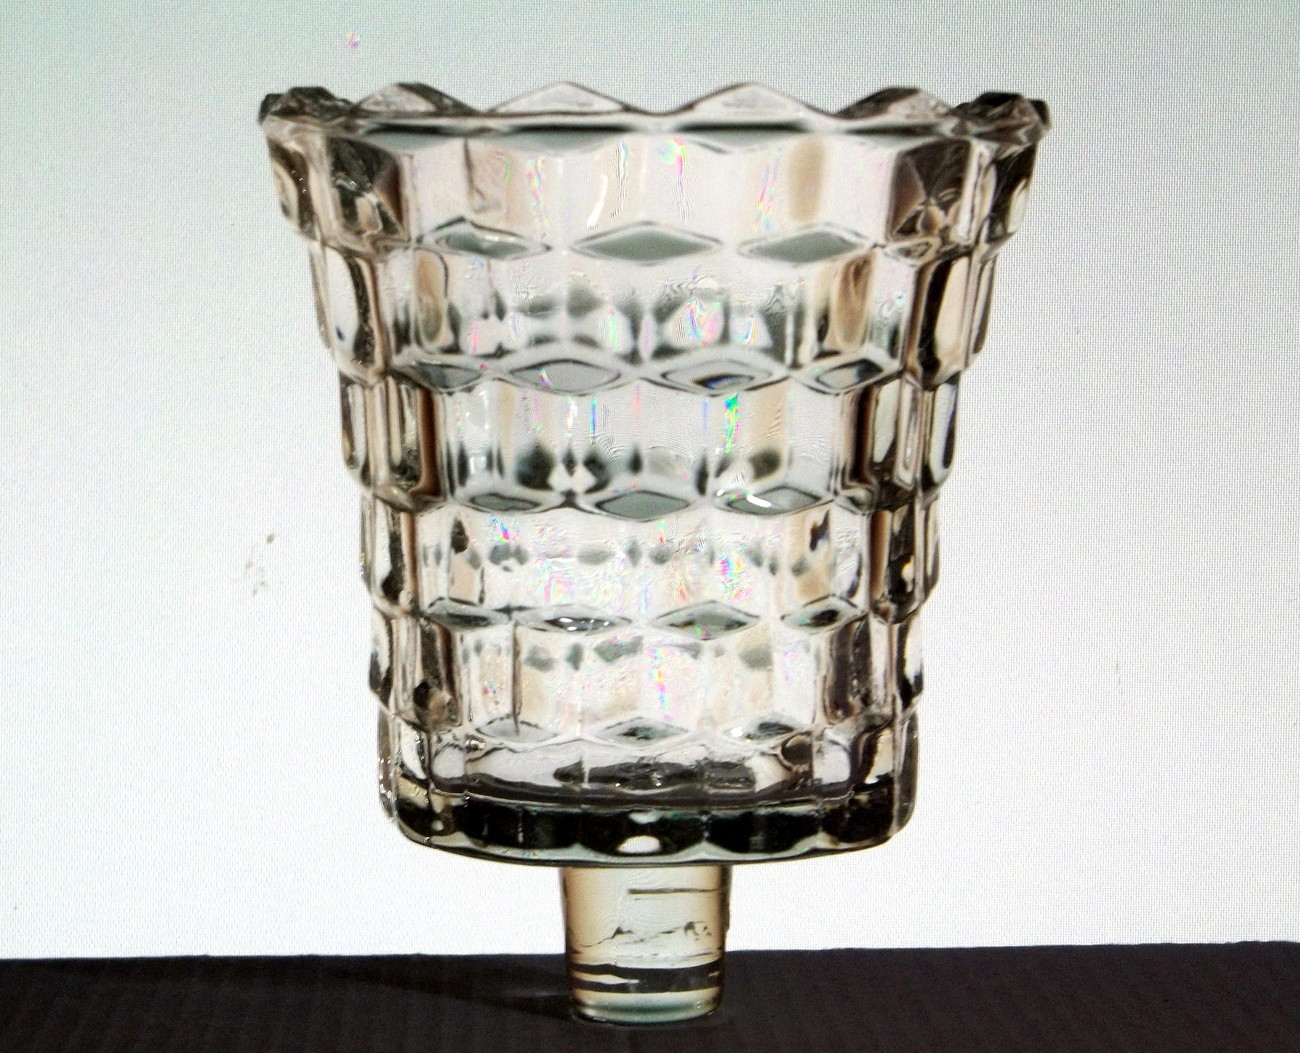 Home Interiors Pegged Votive Candle Cup Lady Love Clear Candle Holders Accessories